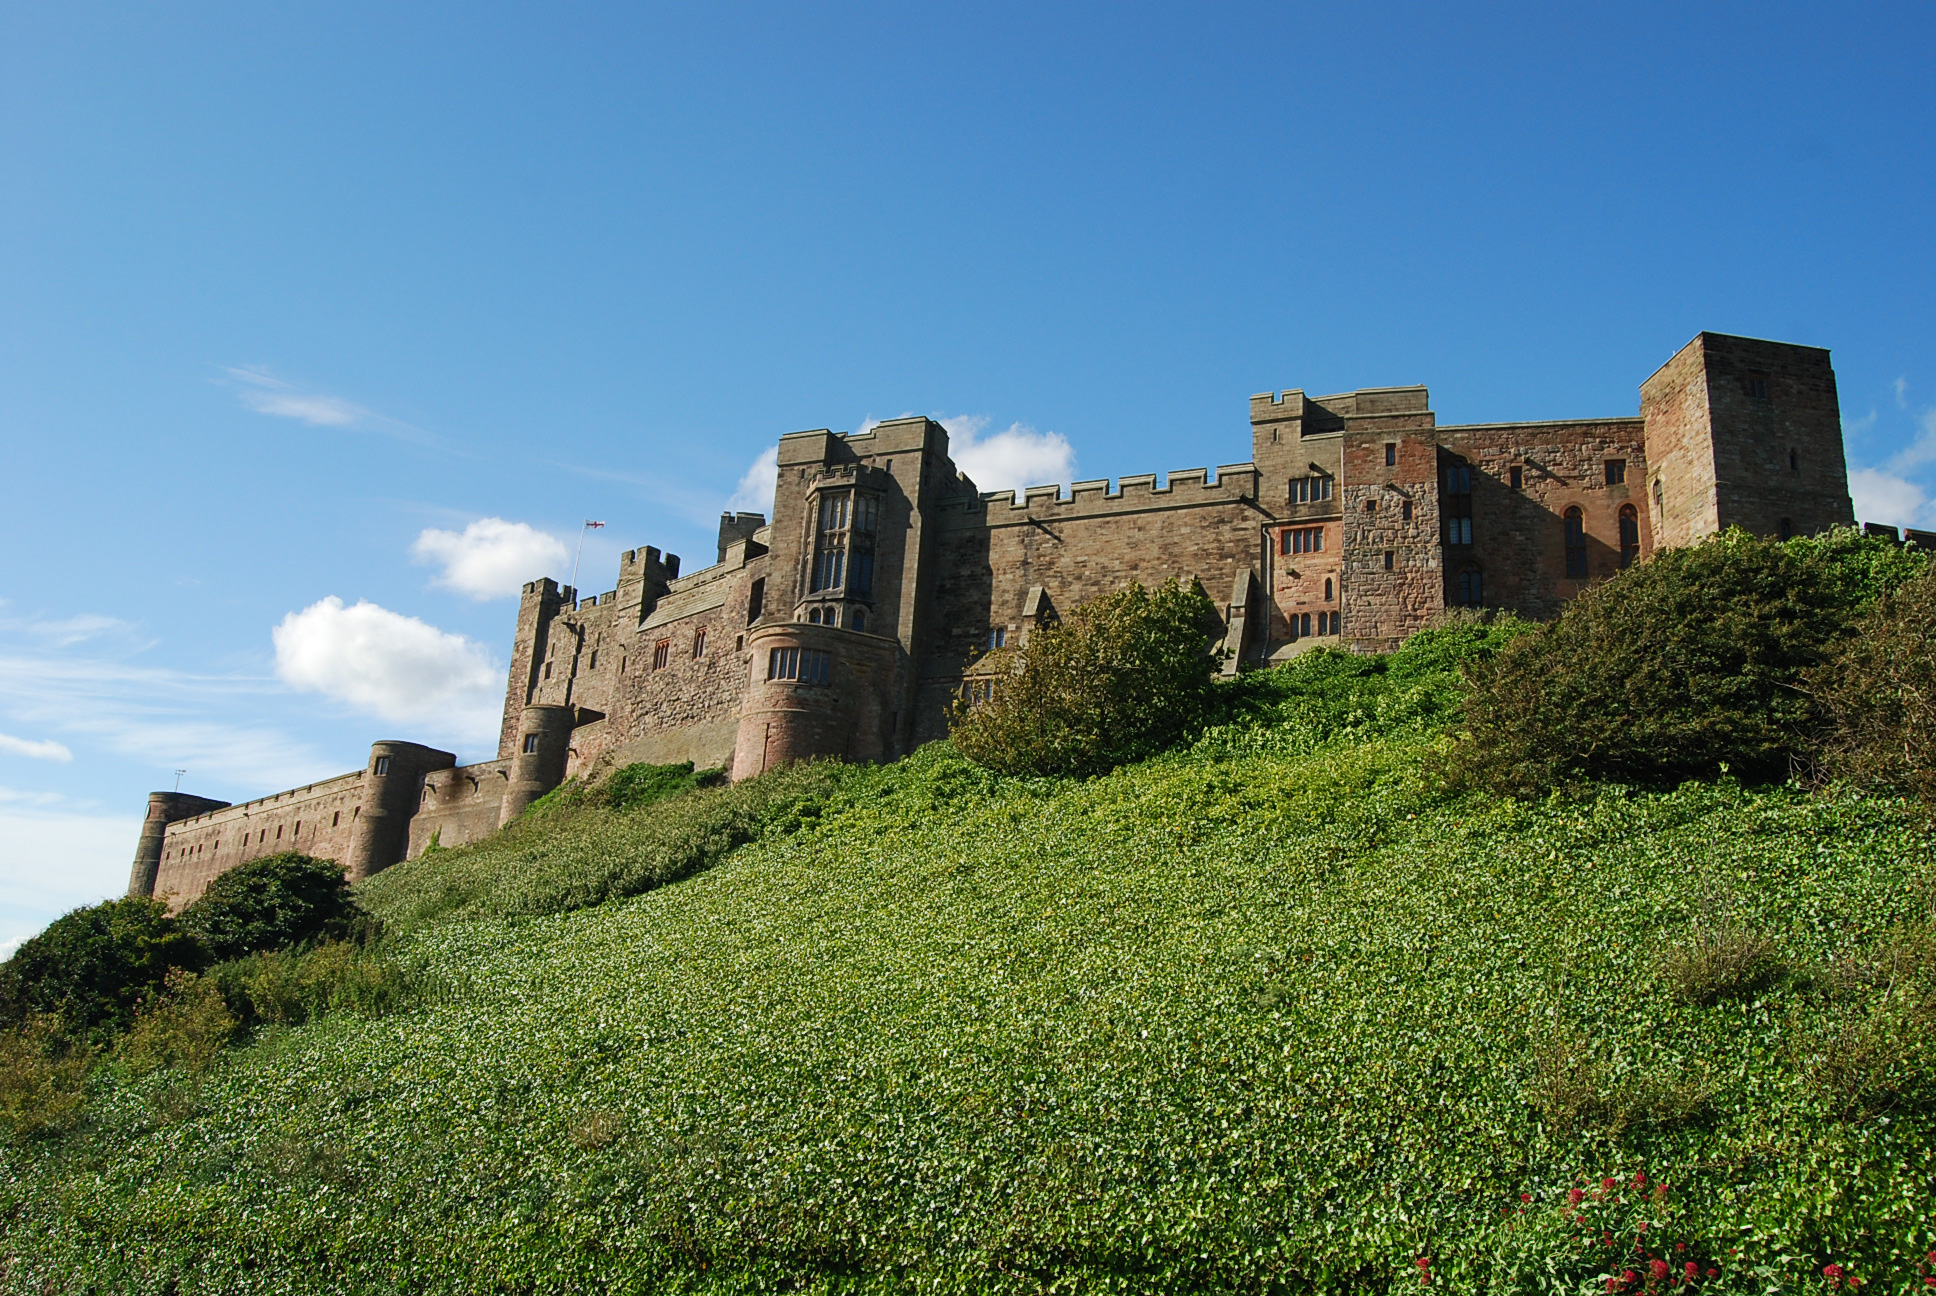 bamburgh castle - photo #37